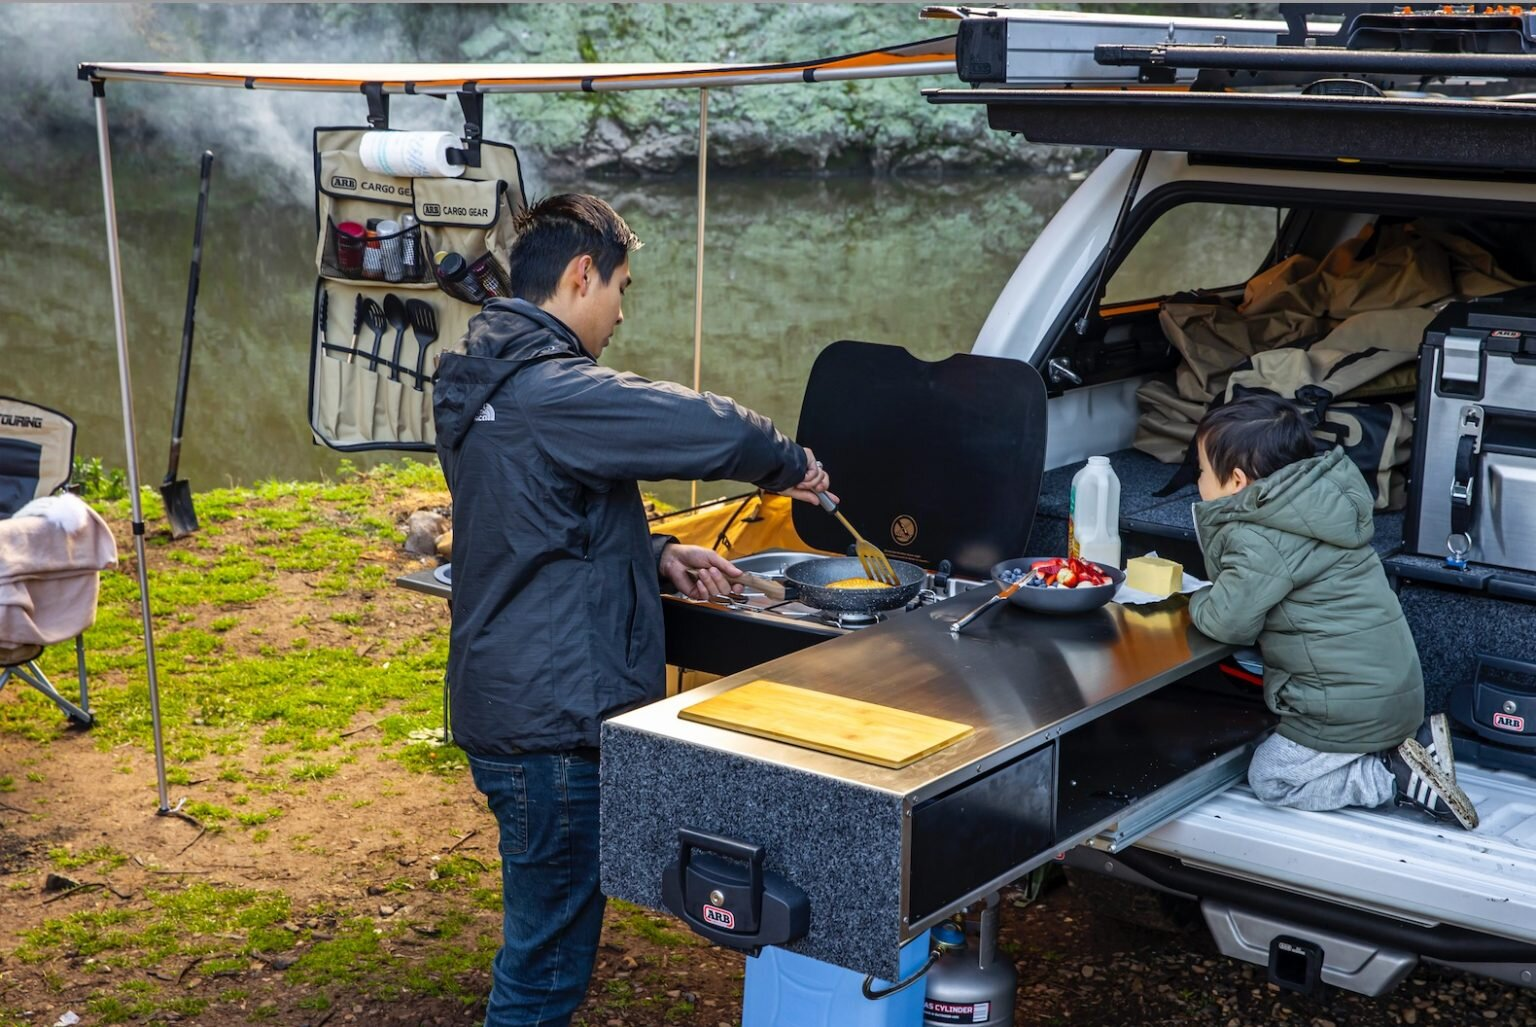 Arb Overland Slide Kitchen Details Features Pricing Overland Expo